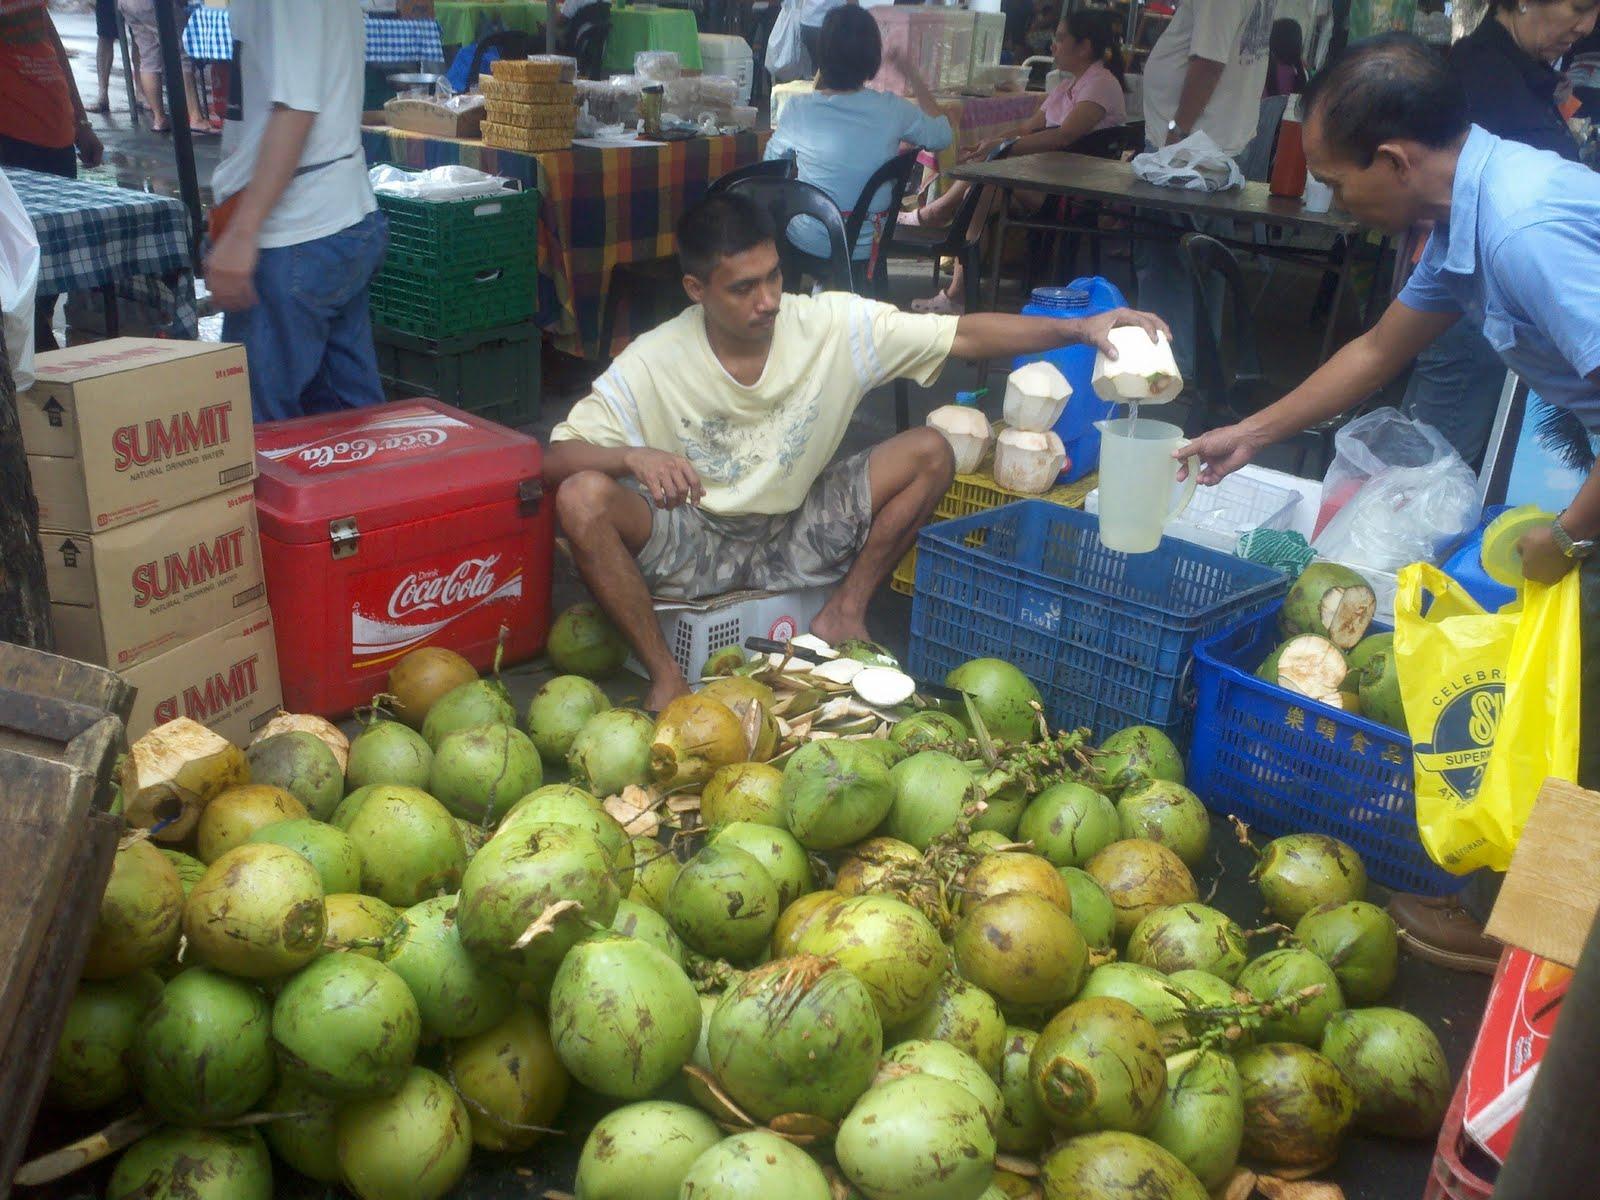 westernization in the philippines American influence on filipino food culture  in the philippines  fernandez who wrote that an american influence on filipino national food culture is.